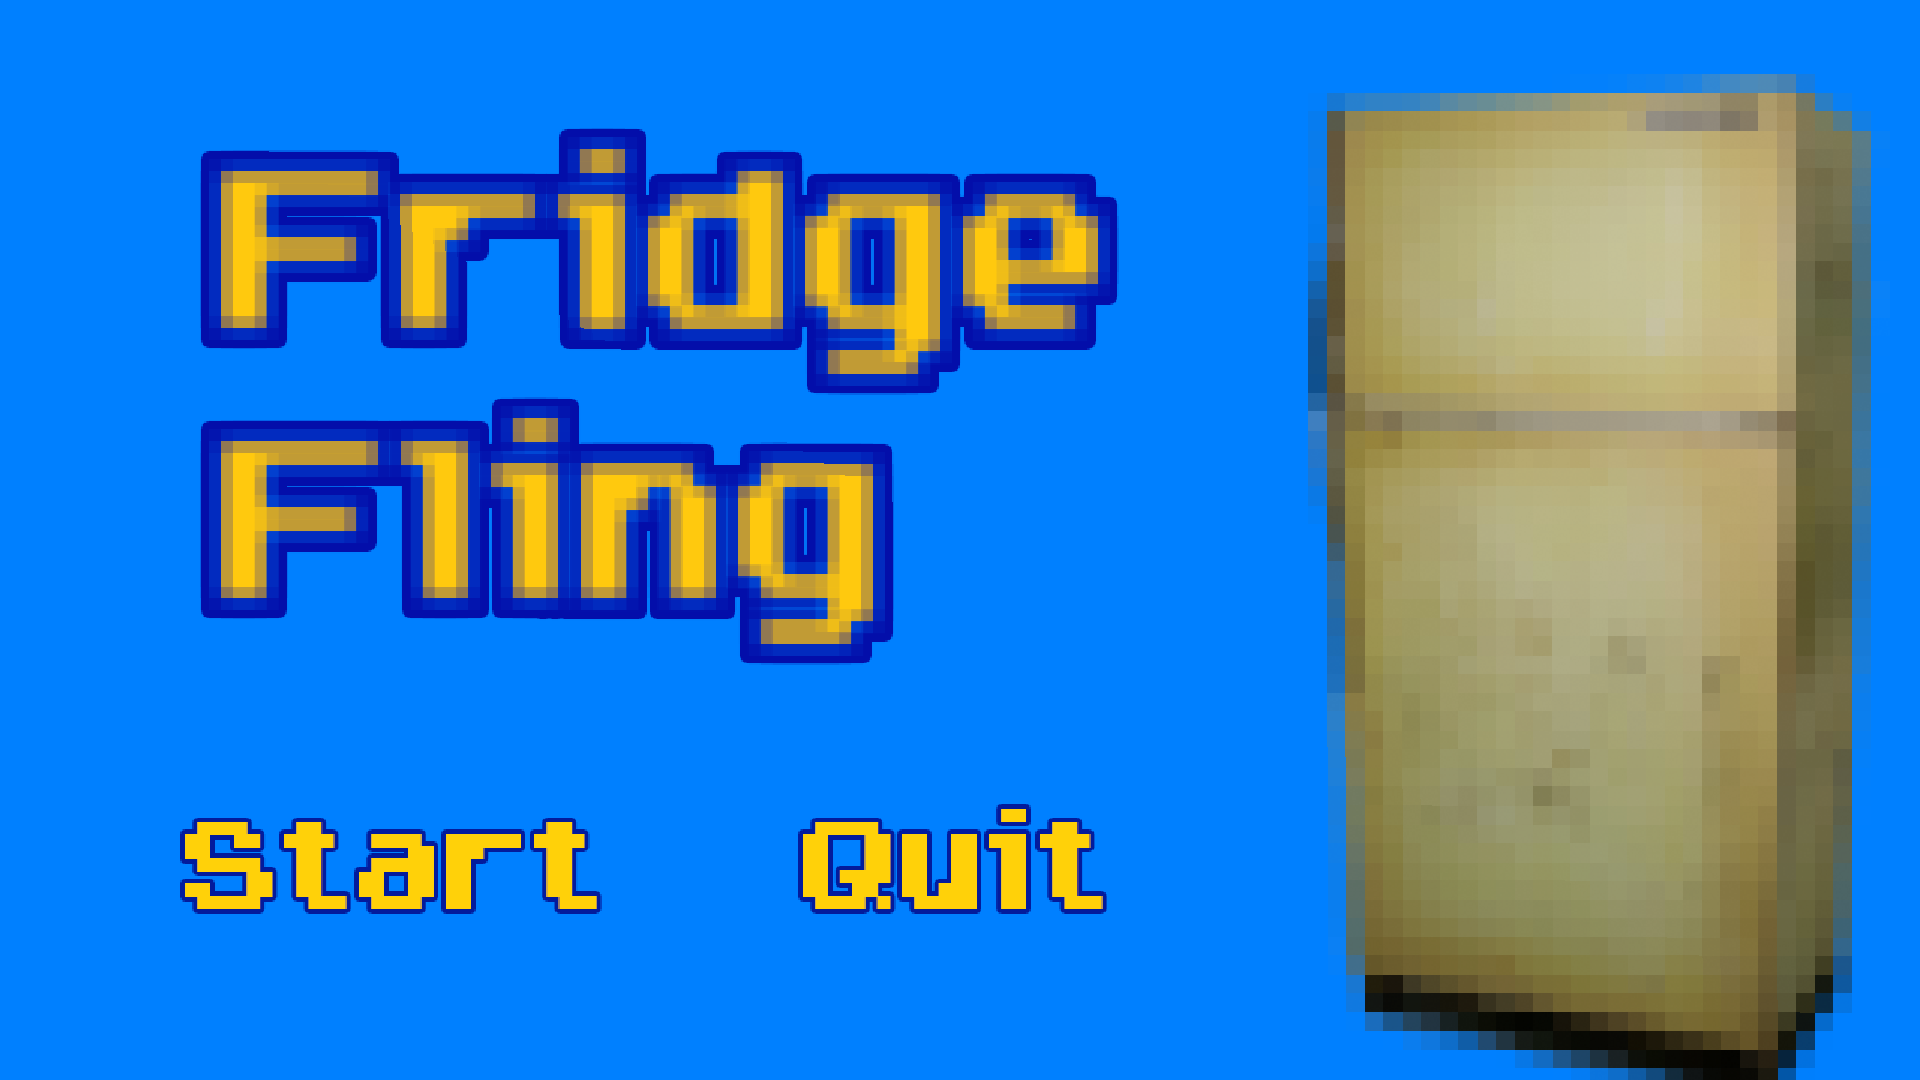 Fridge Fling - educational game about projectile physics